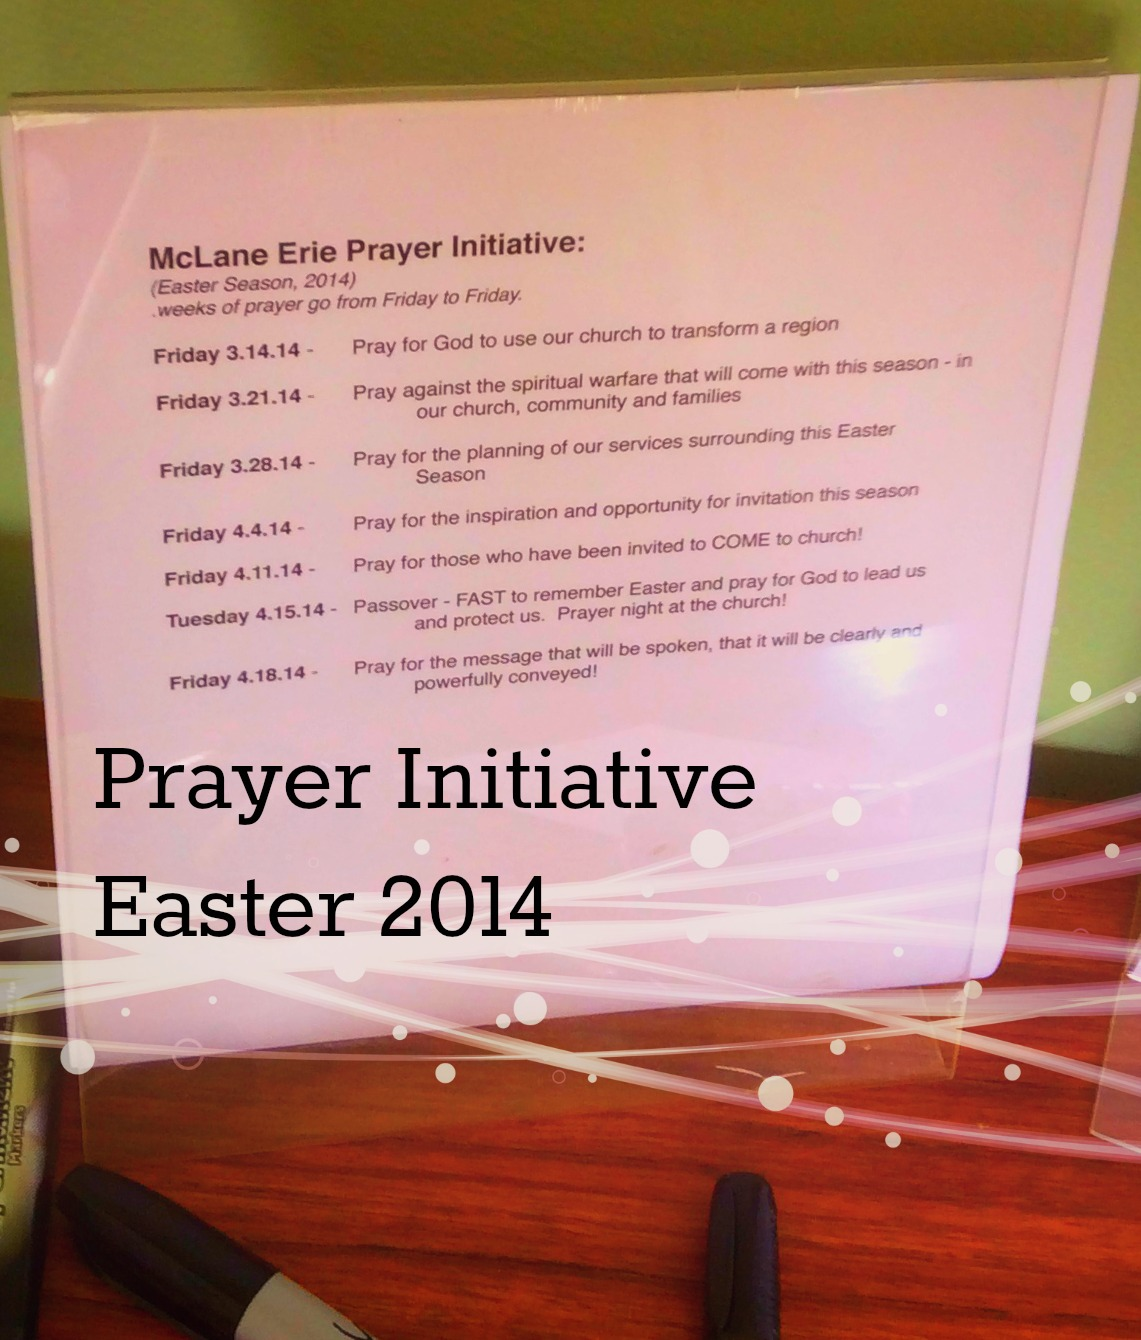 Prayer Initiative